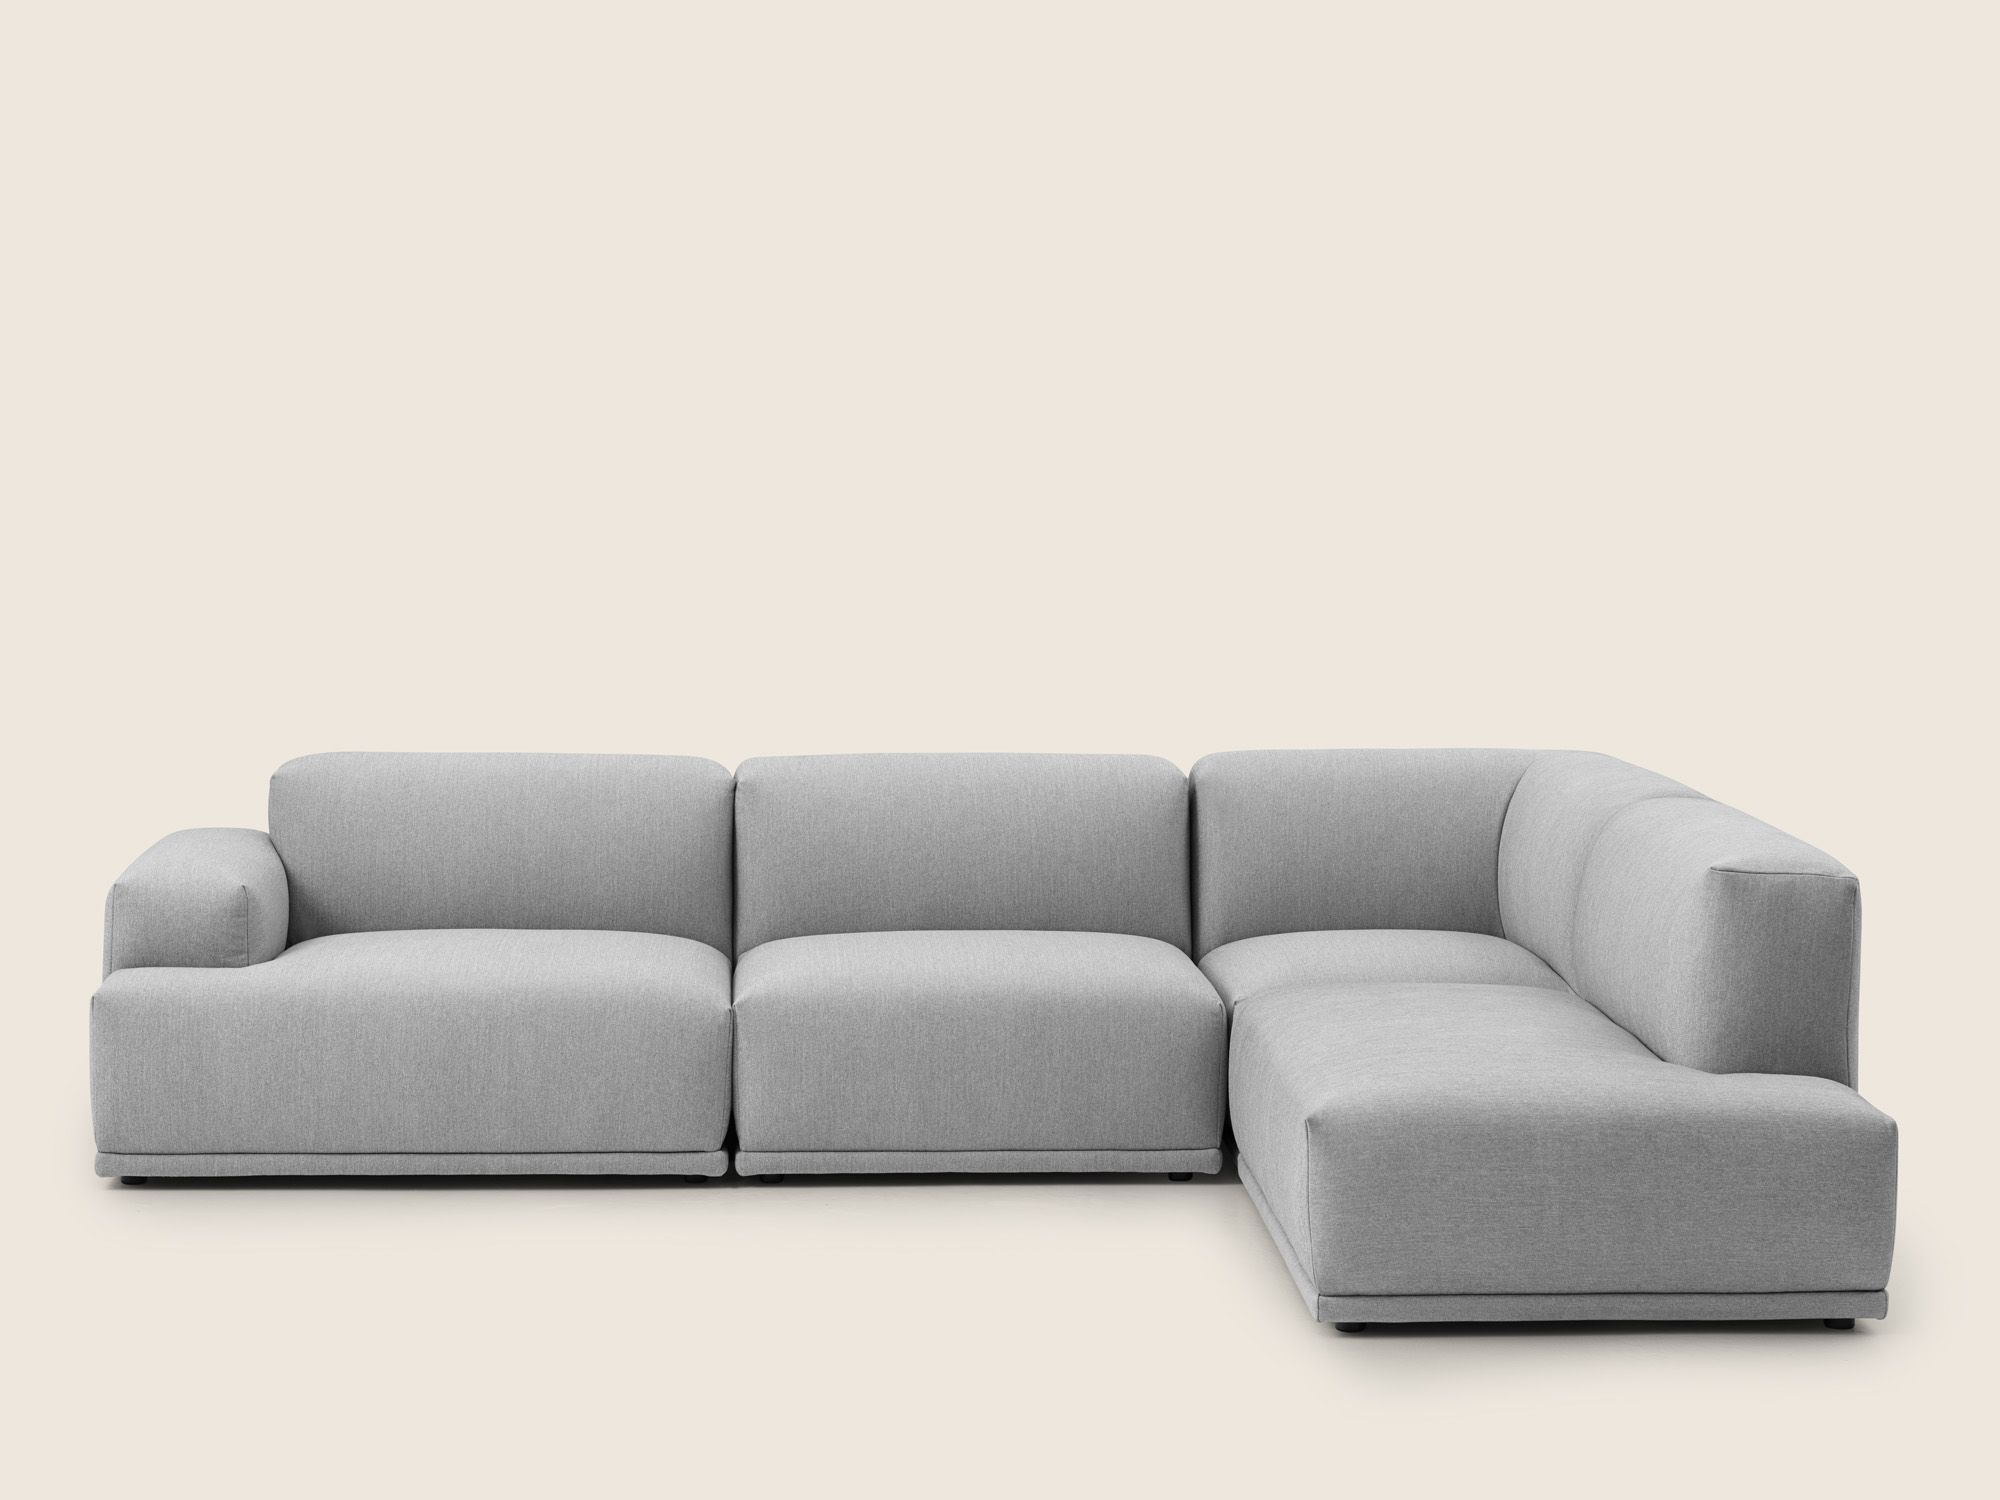 The Connect Modular Sofa Brings A Modern Perspective To The Typology Allowing For Its User To Cu In 2020 Scandinavian Furniture Design Corner Sofa Design Modular Sofa